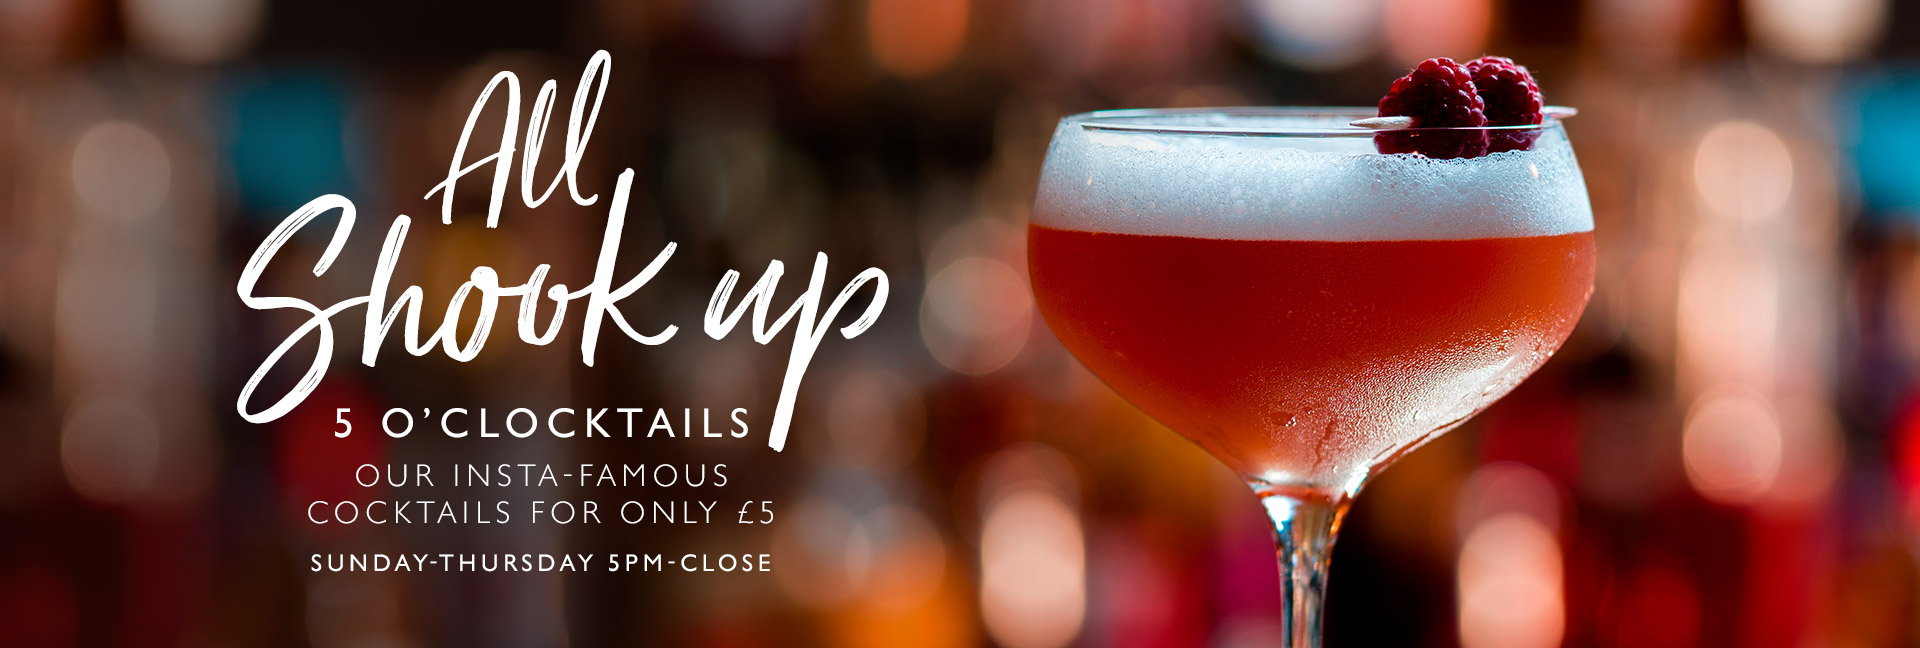 5 O'clocktails at All Bar One Tower of London - Book now